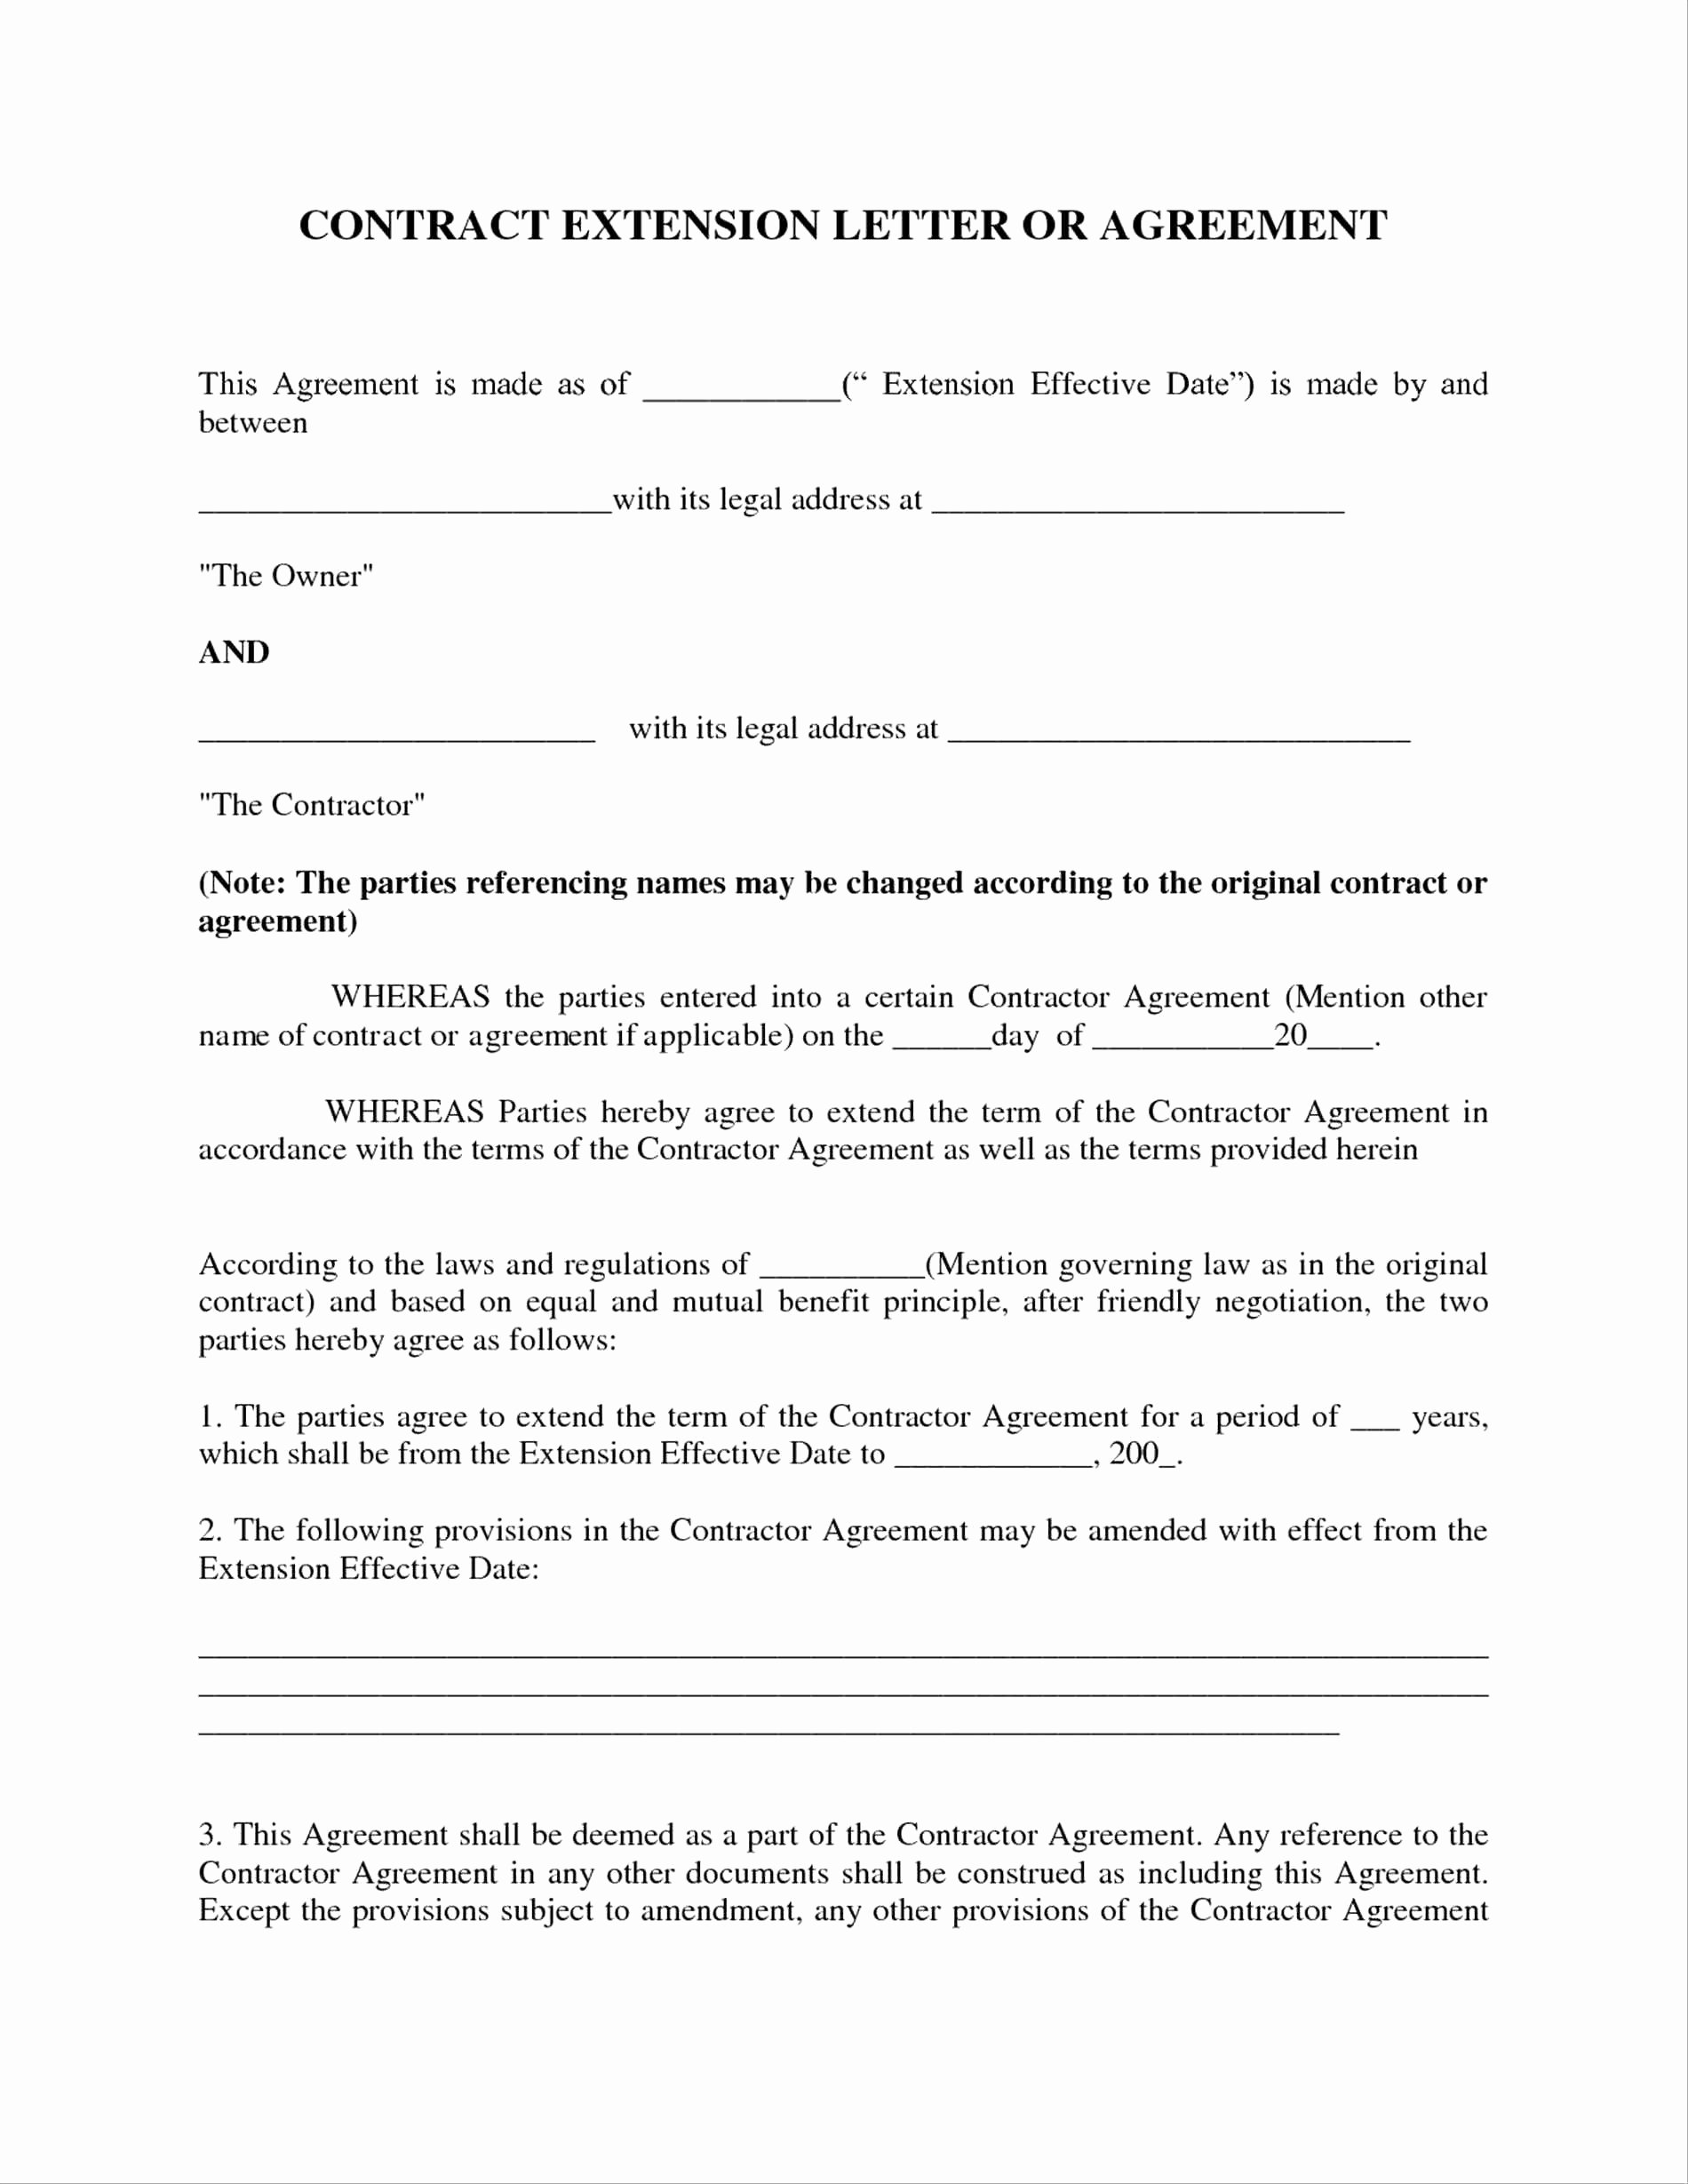 Agreement Letter Between Two Parties Template Awesome Letter Agreement Template Between Two Parties Collection